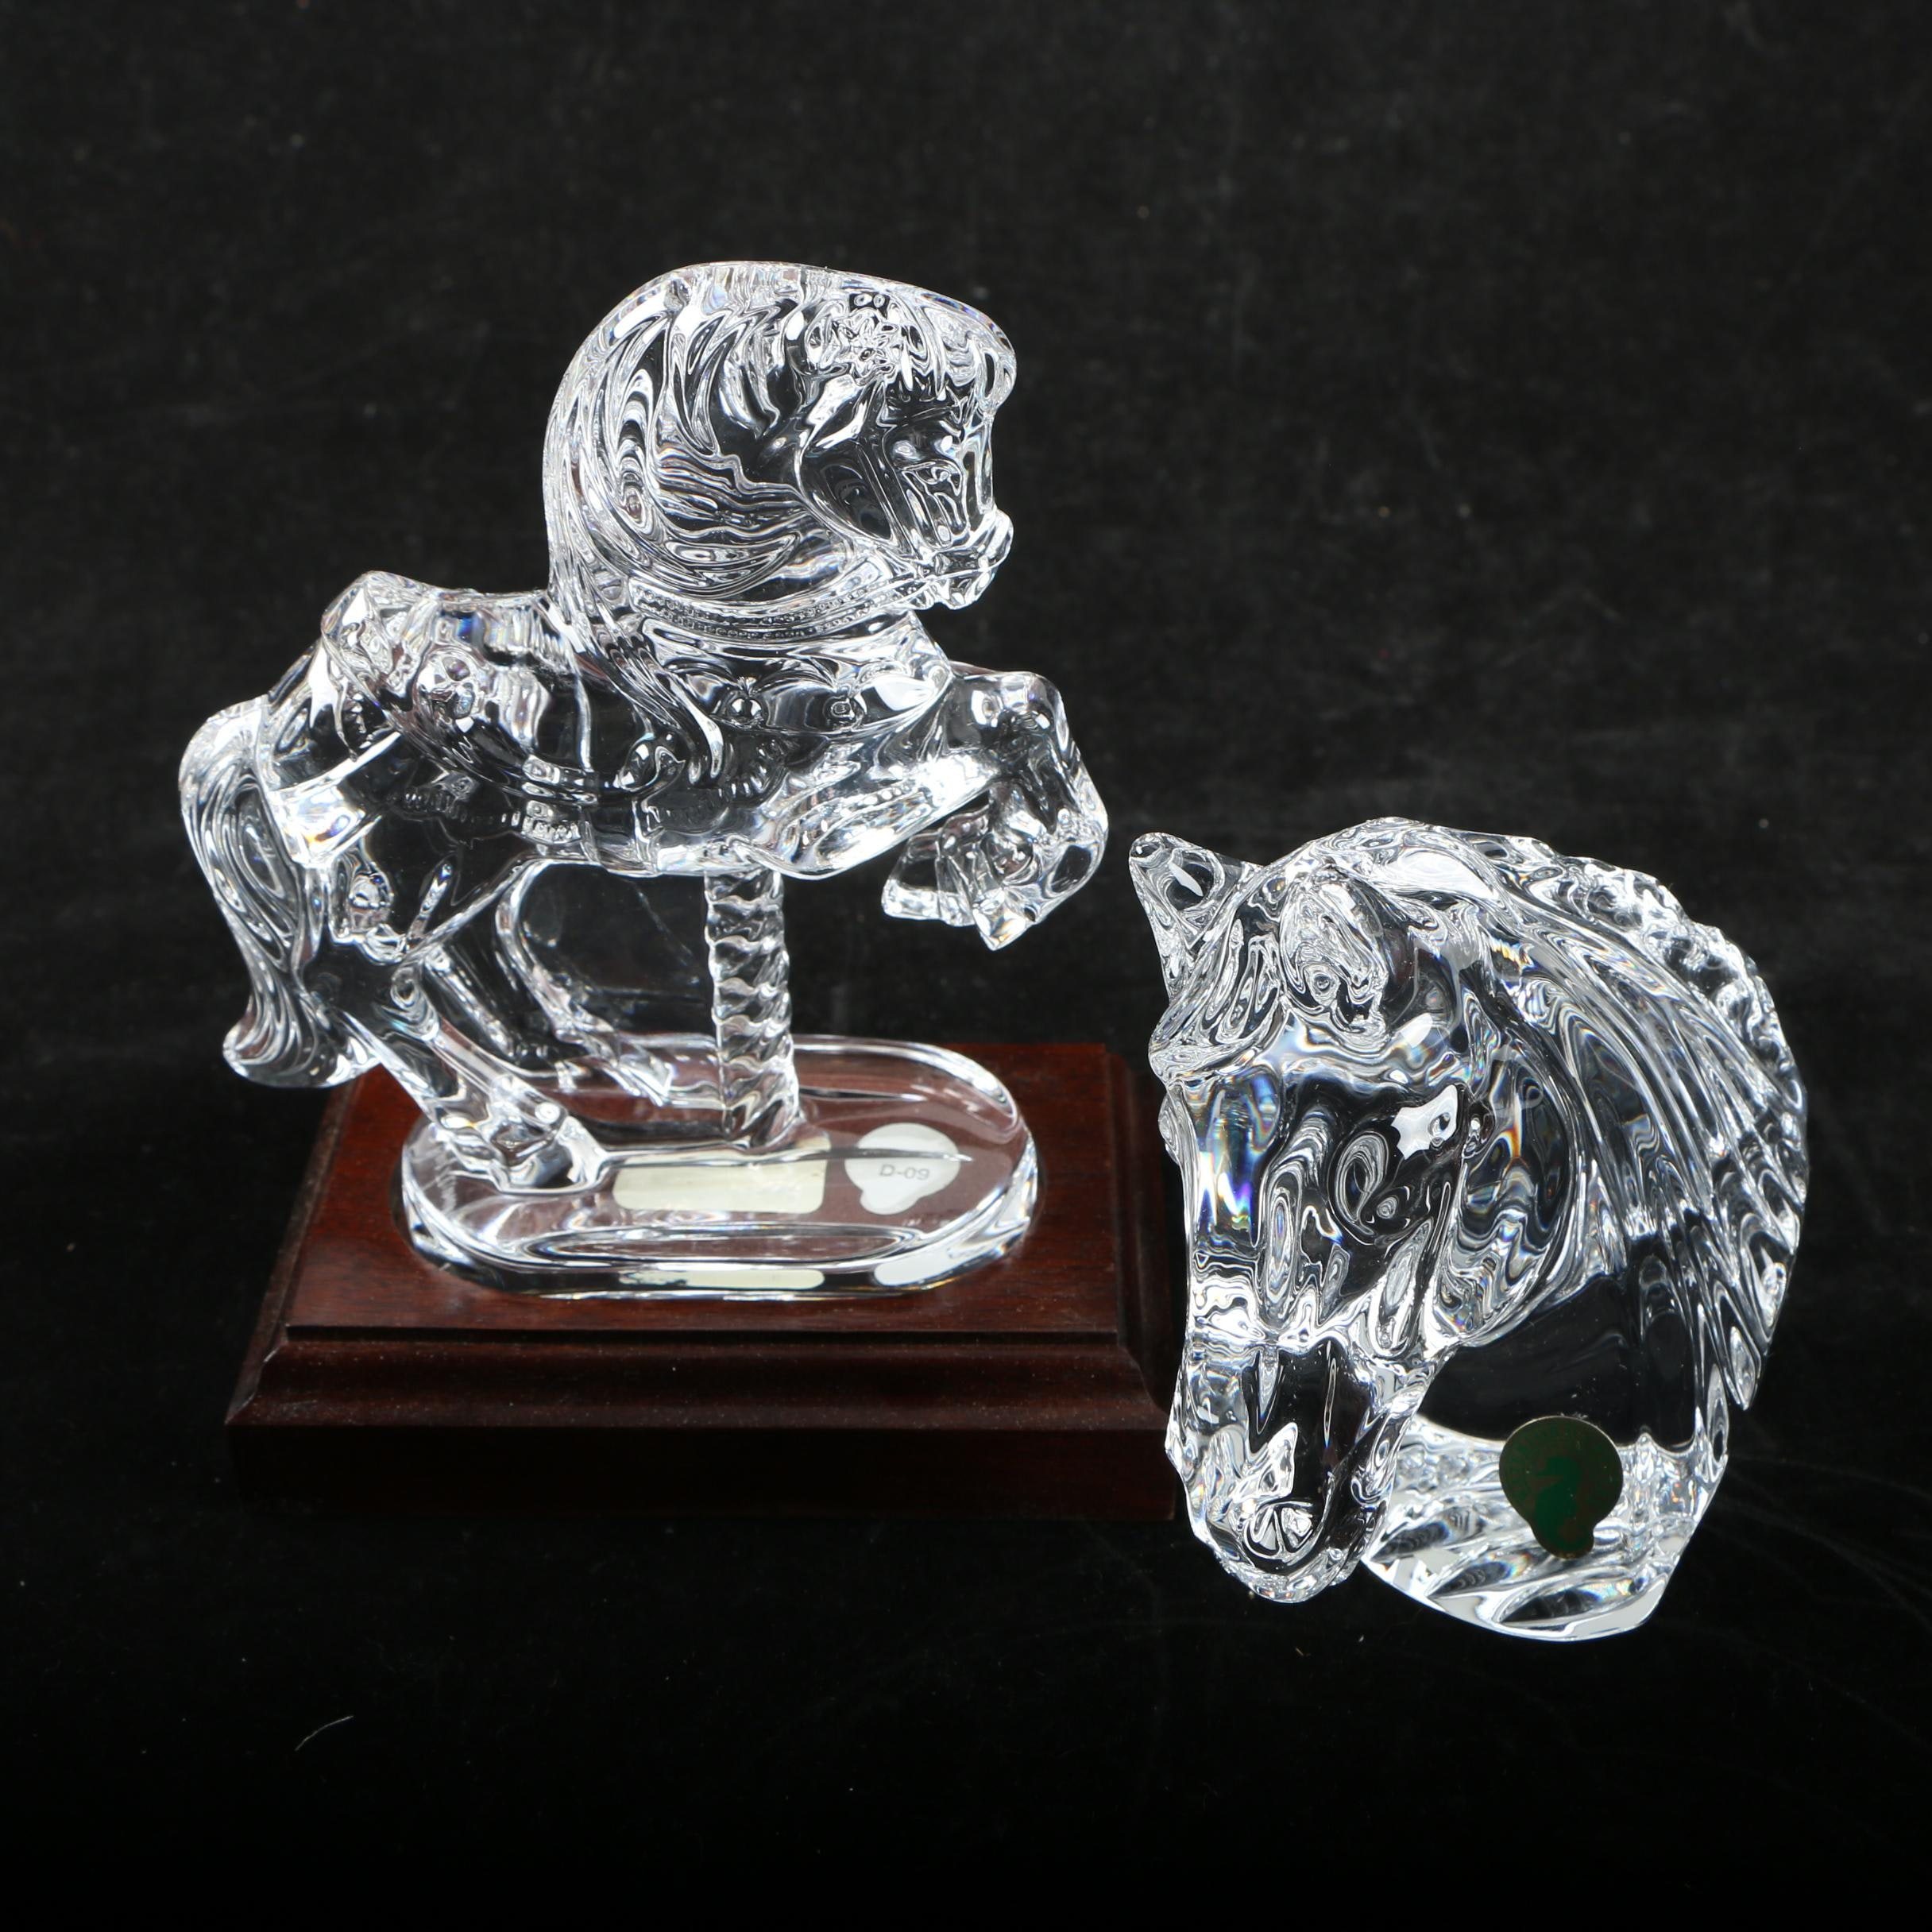 Pairing of Waterford Crystal Horse Figurines